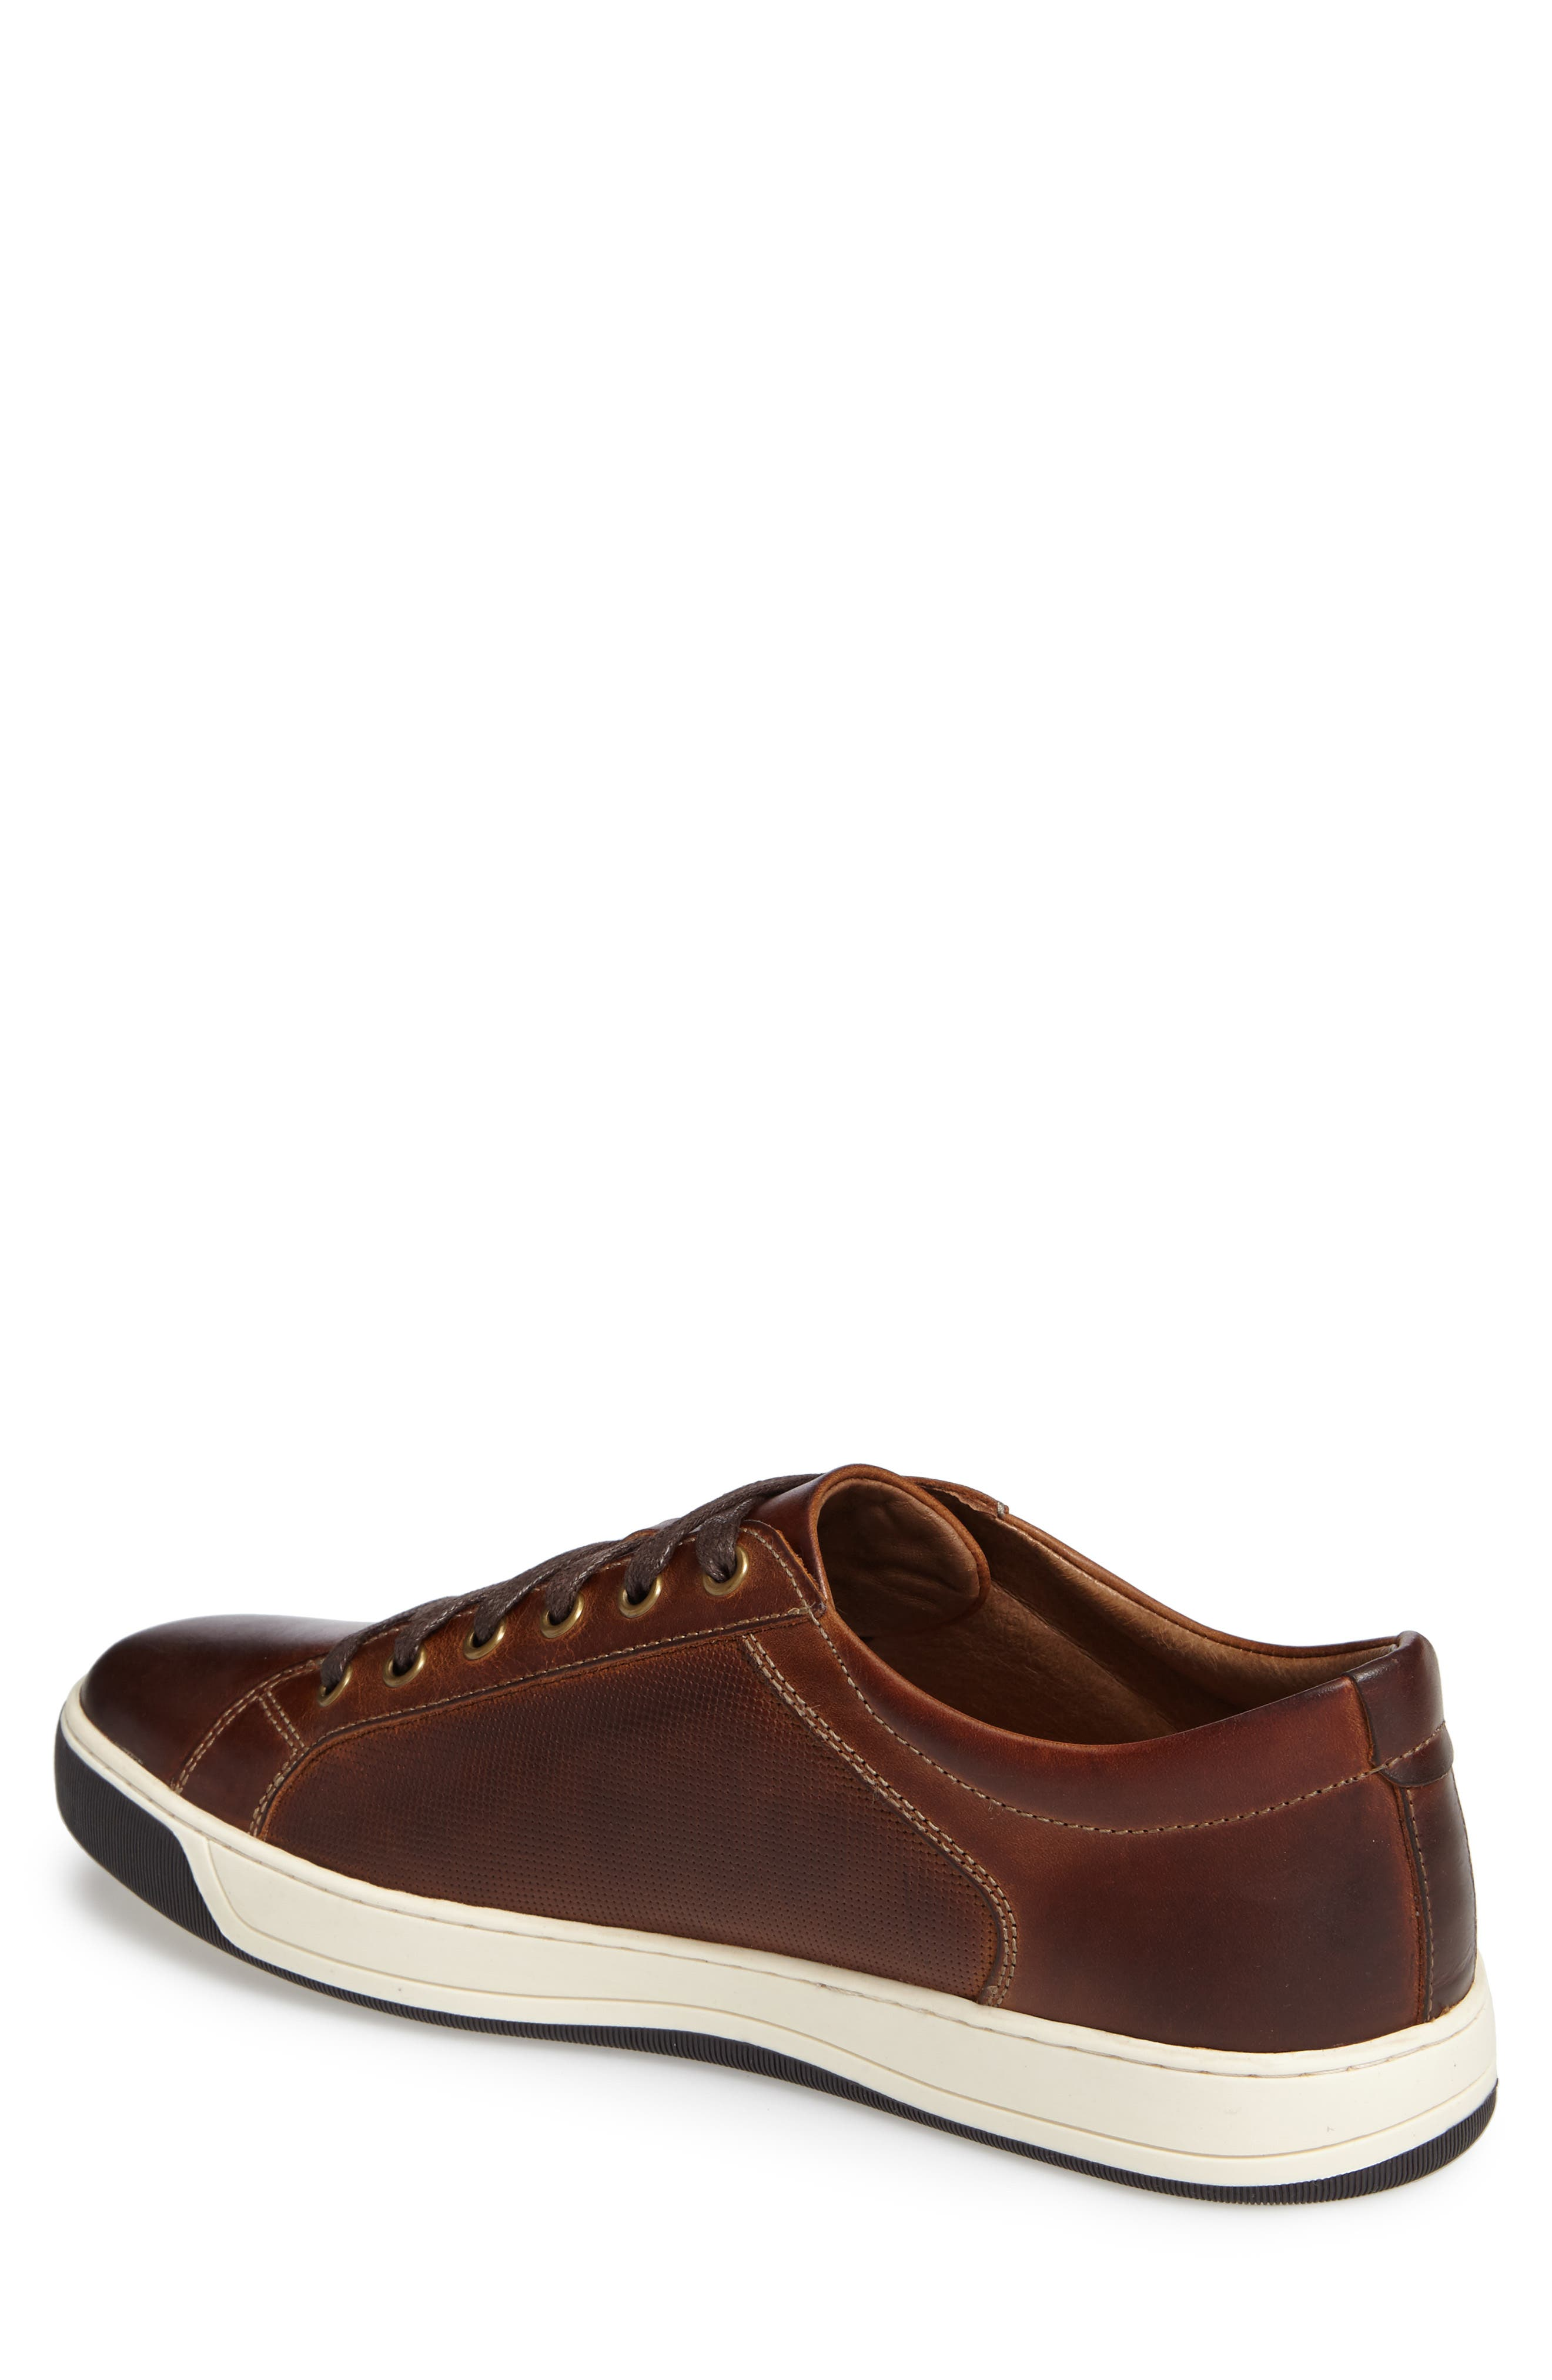 Allister Sneaker,                             Alternate thumbnail 2, color,                             BROWN LEATHER